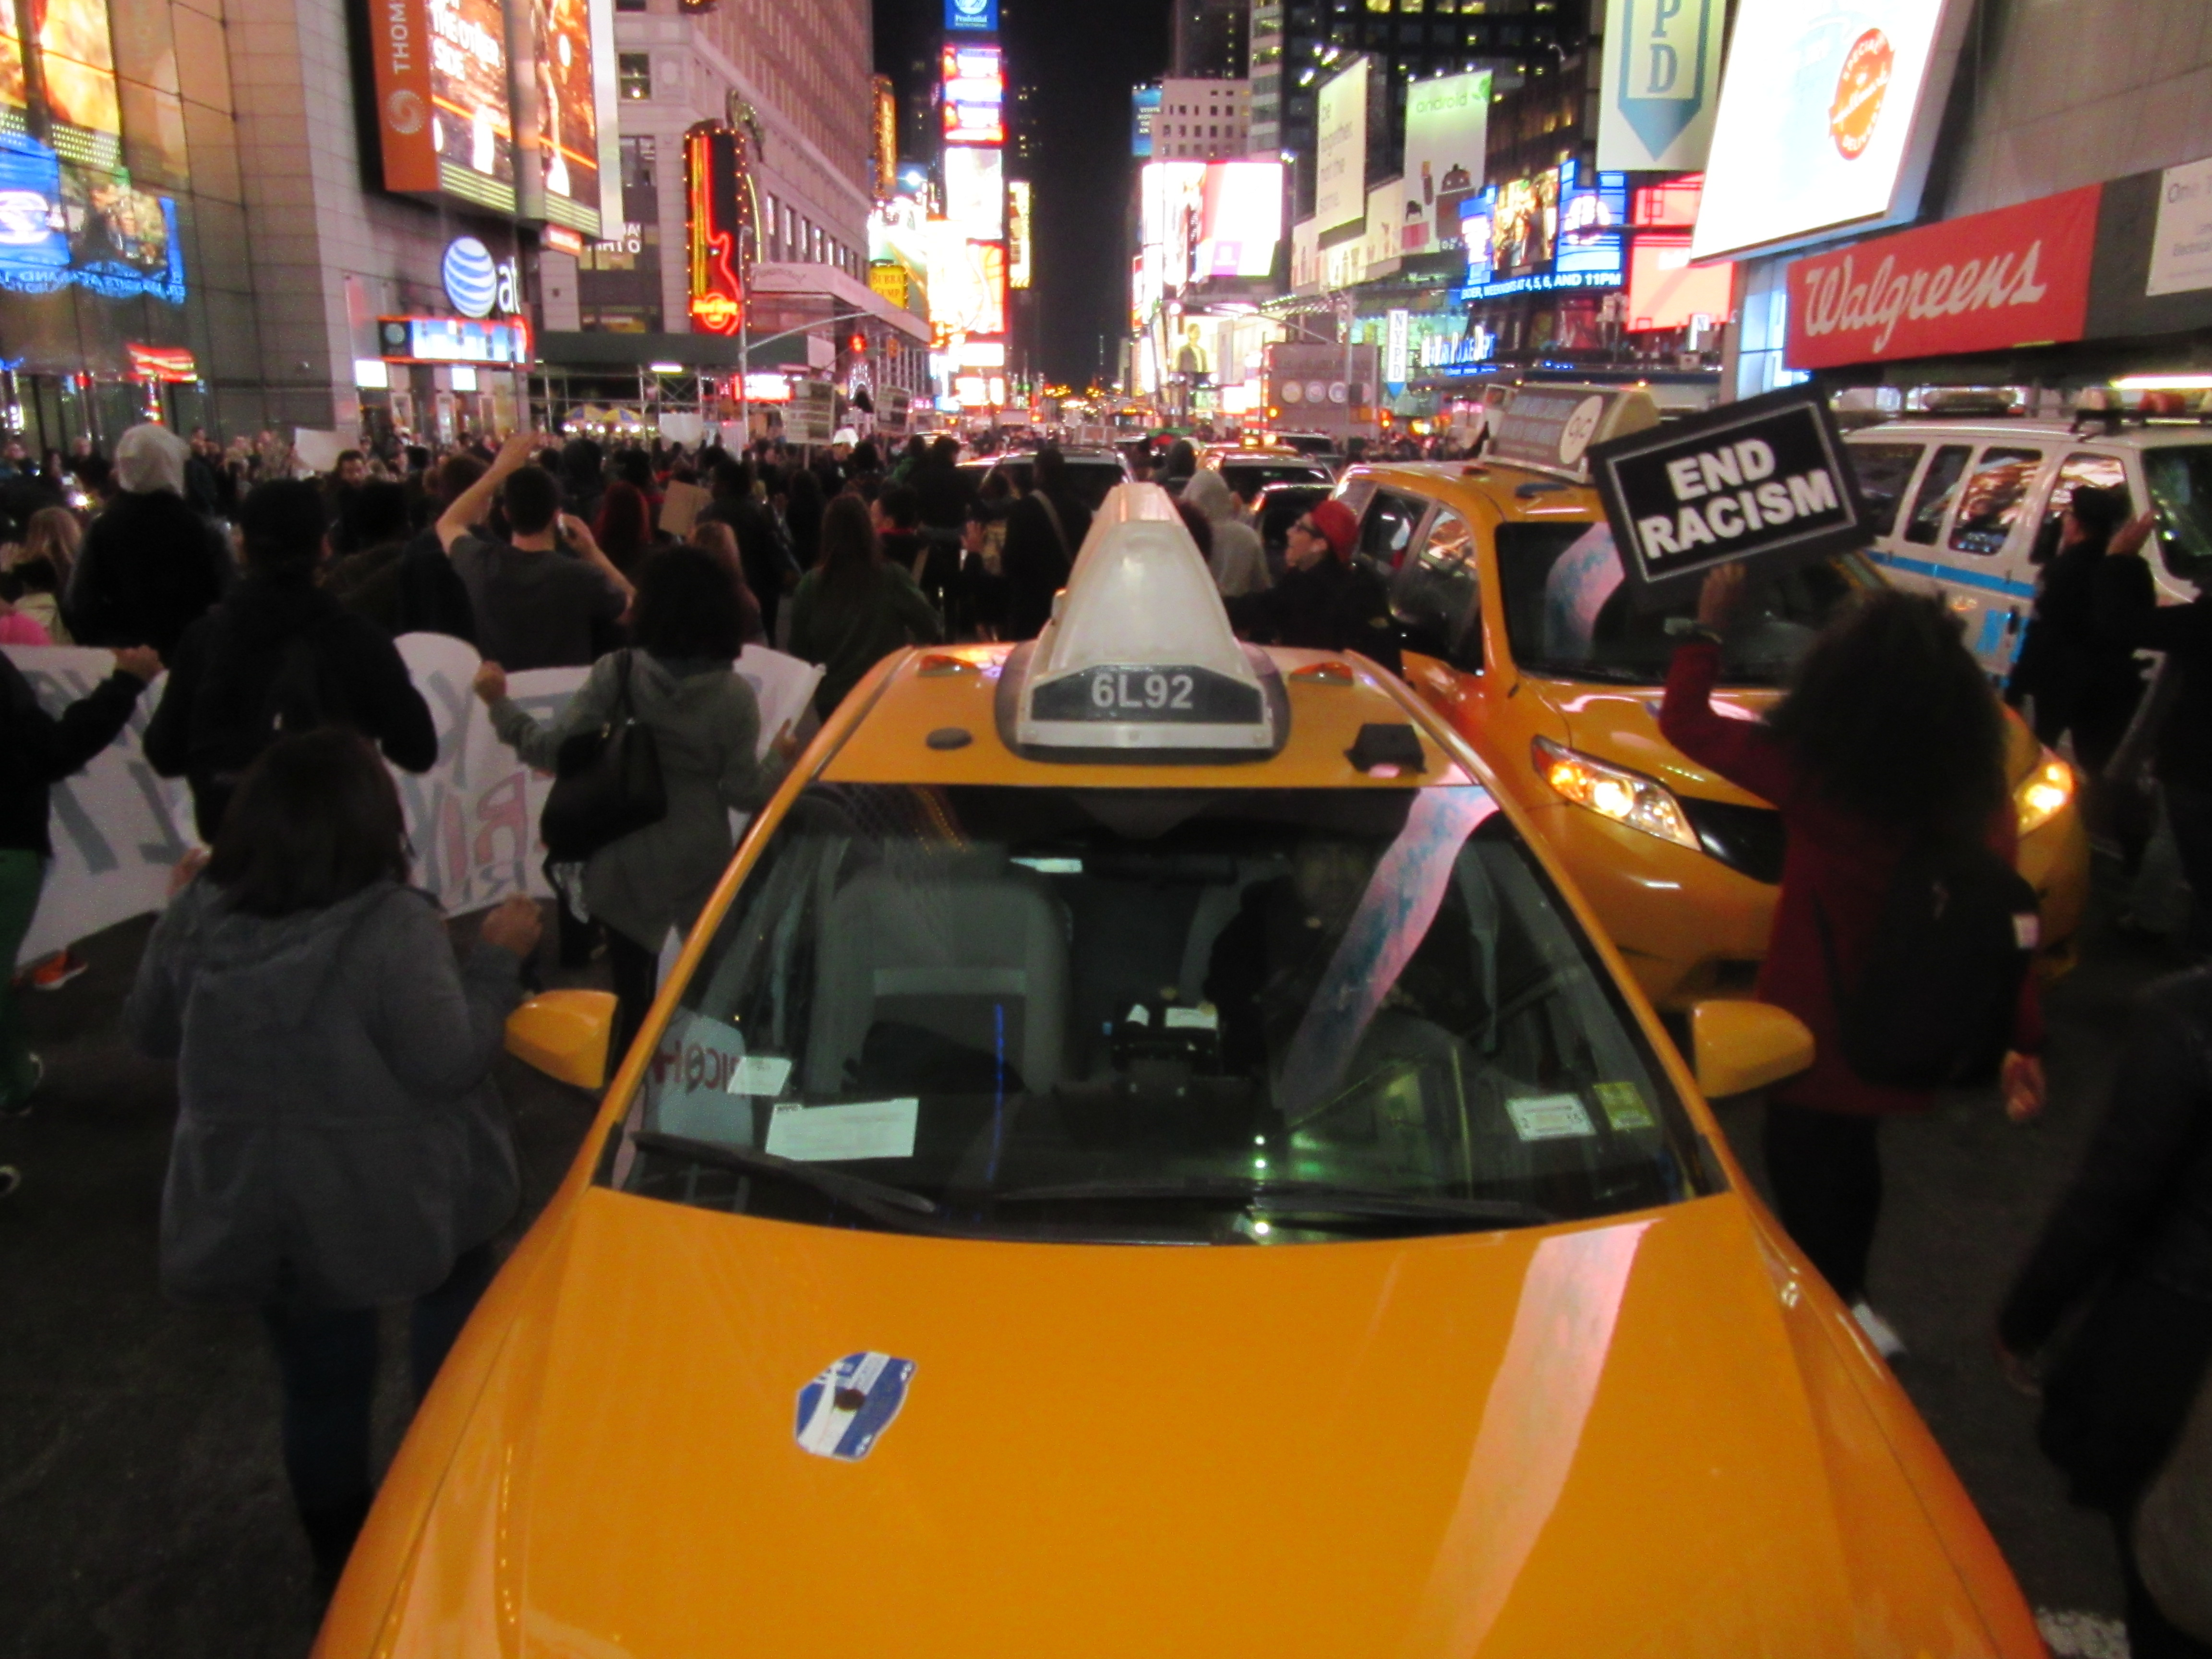 Police reform activists head up Seventh Avenue toward Times Square (Photo: Will Bredderman).